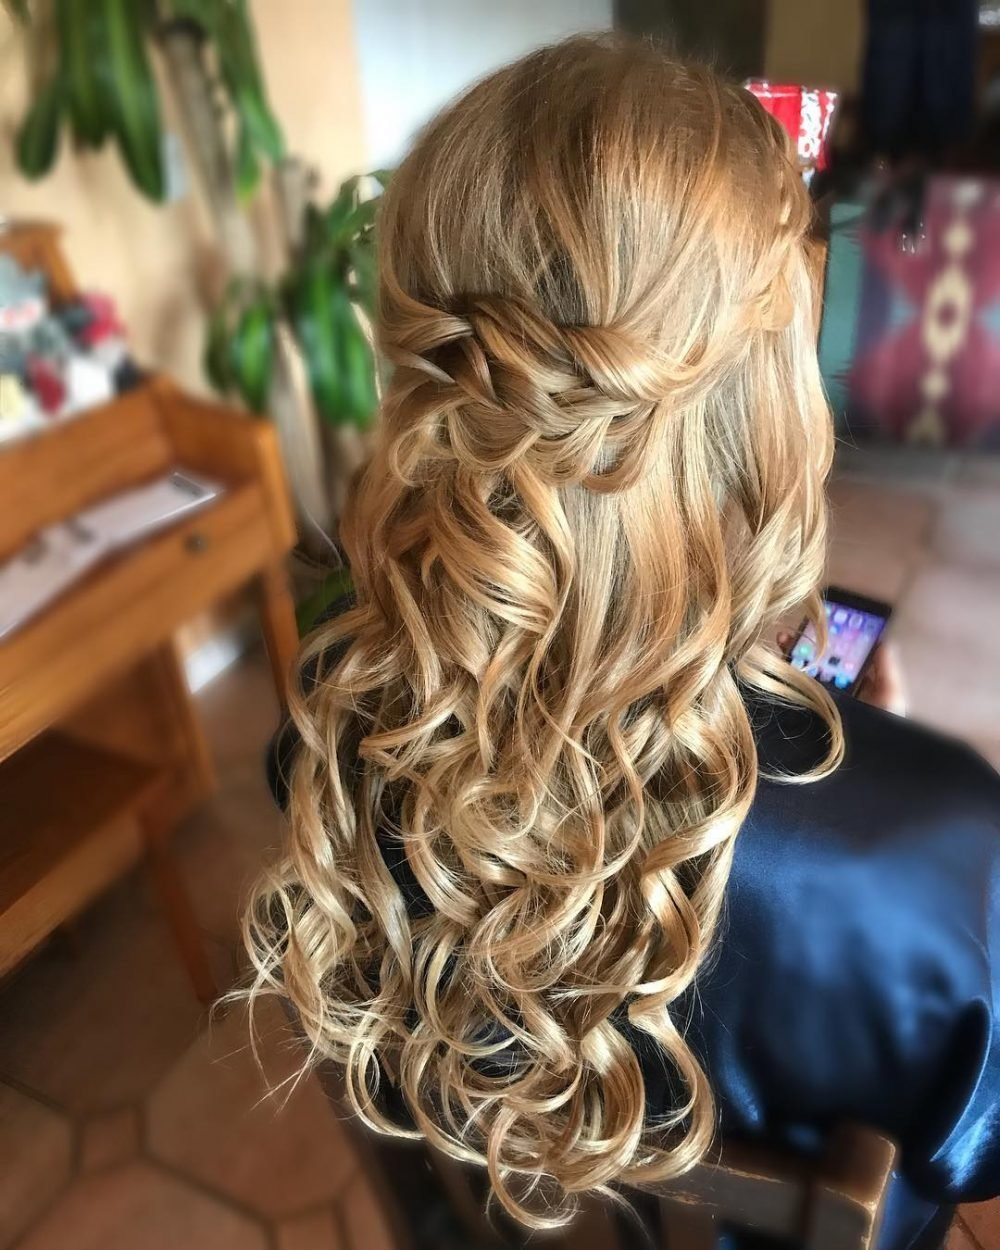 New 27 Gorgeous Wedding Hairstyles For Long Hair In 2019 Ideas With Pictures